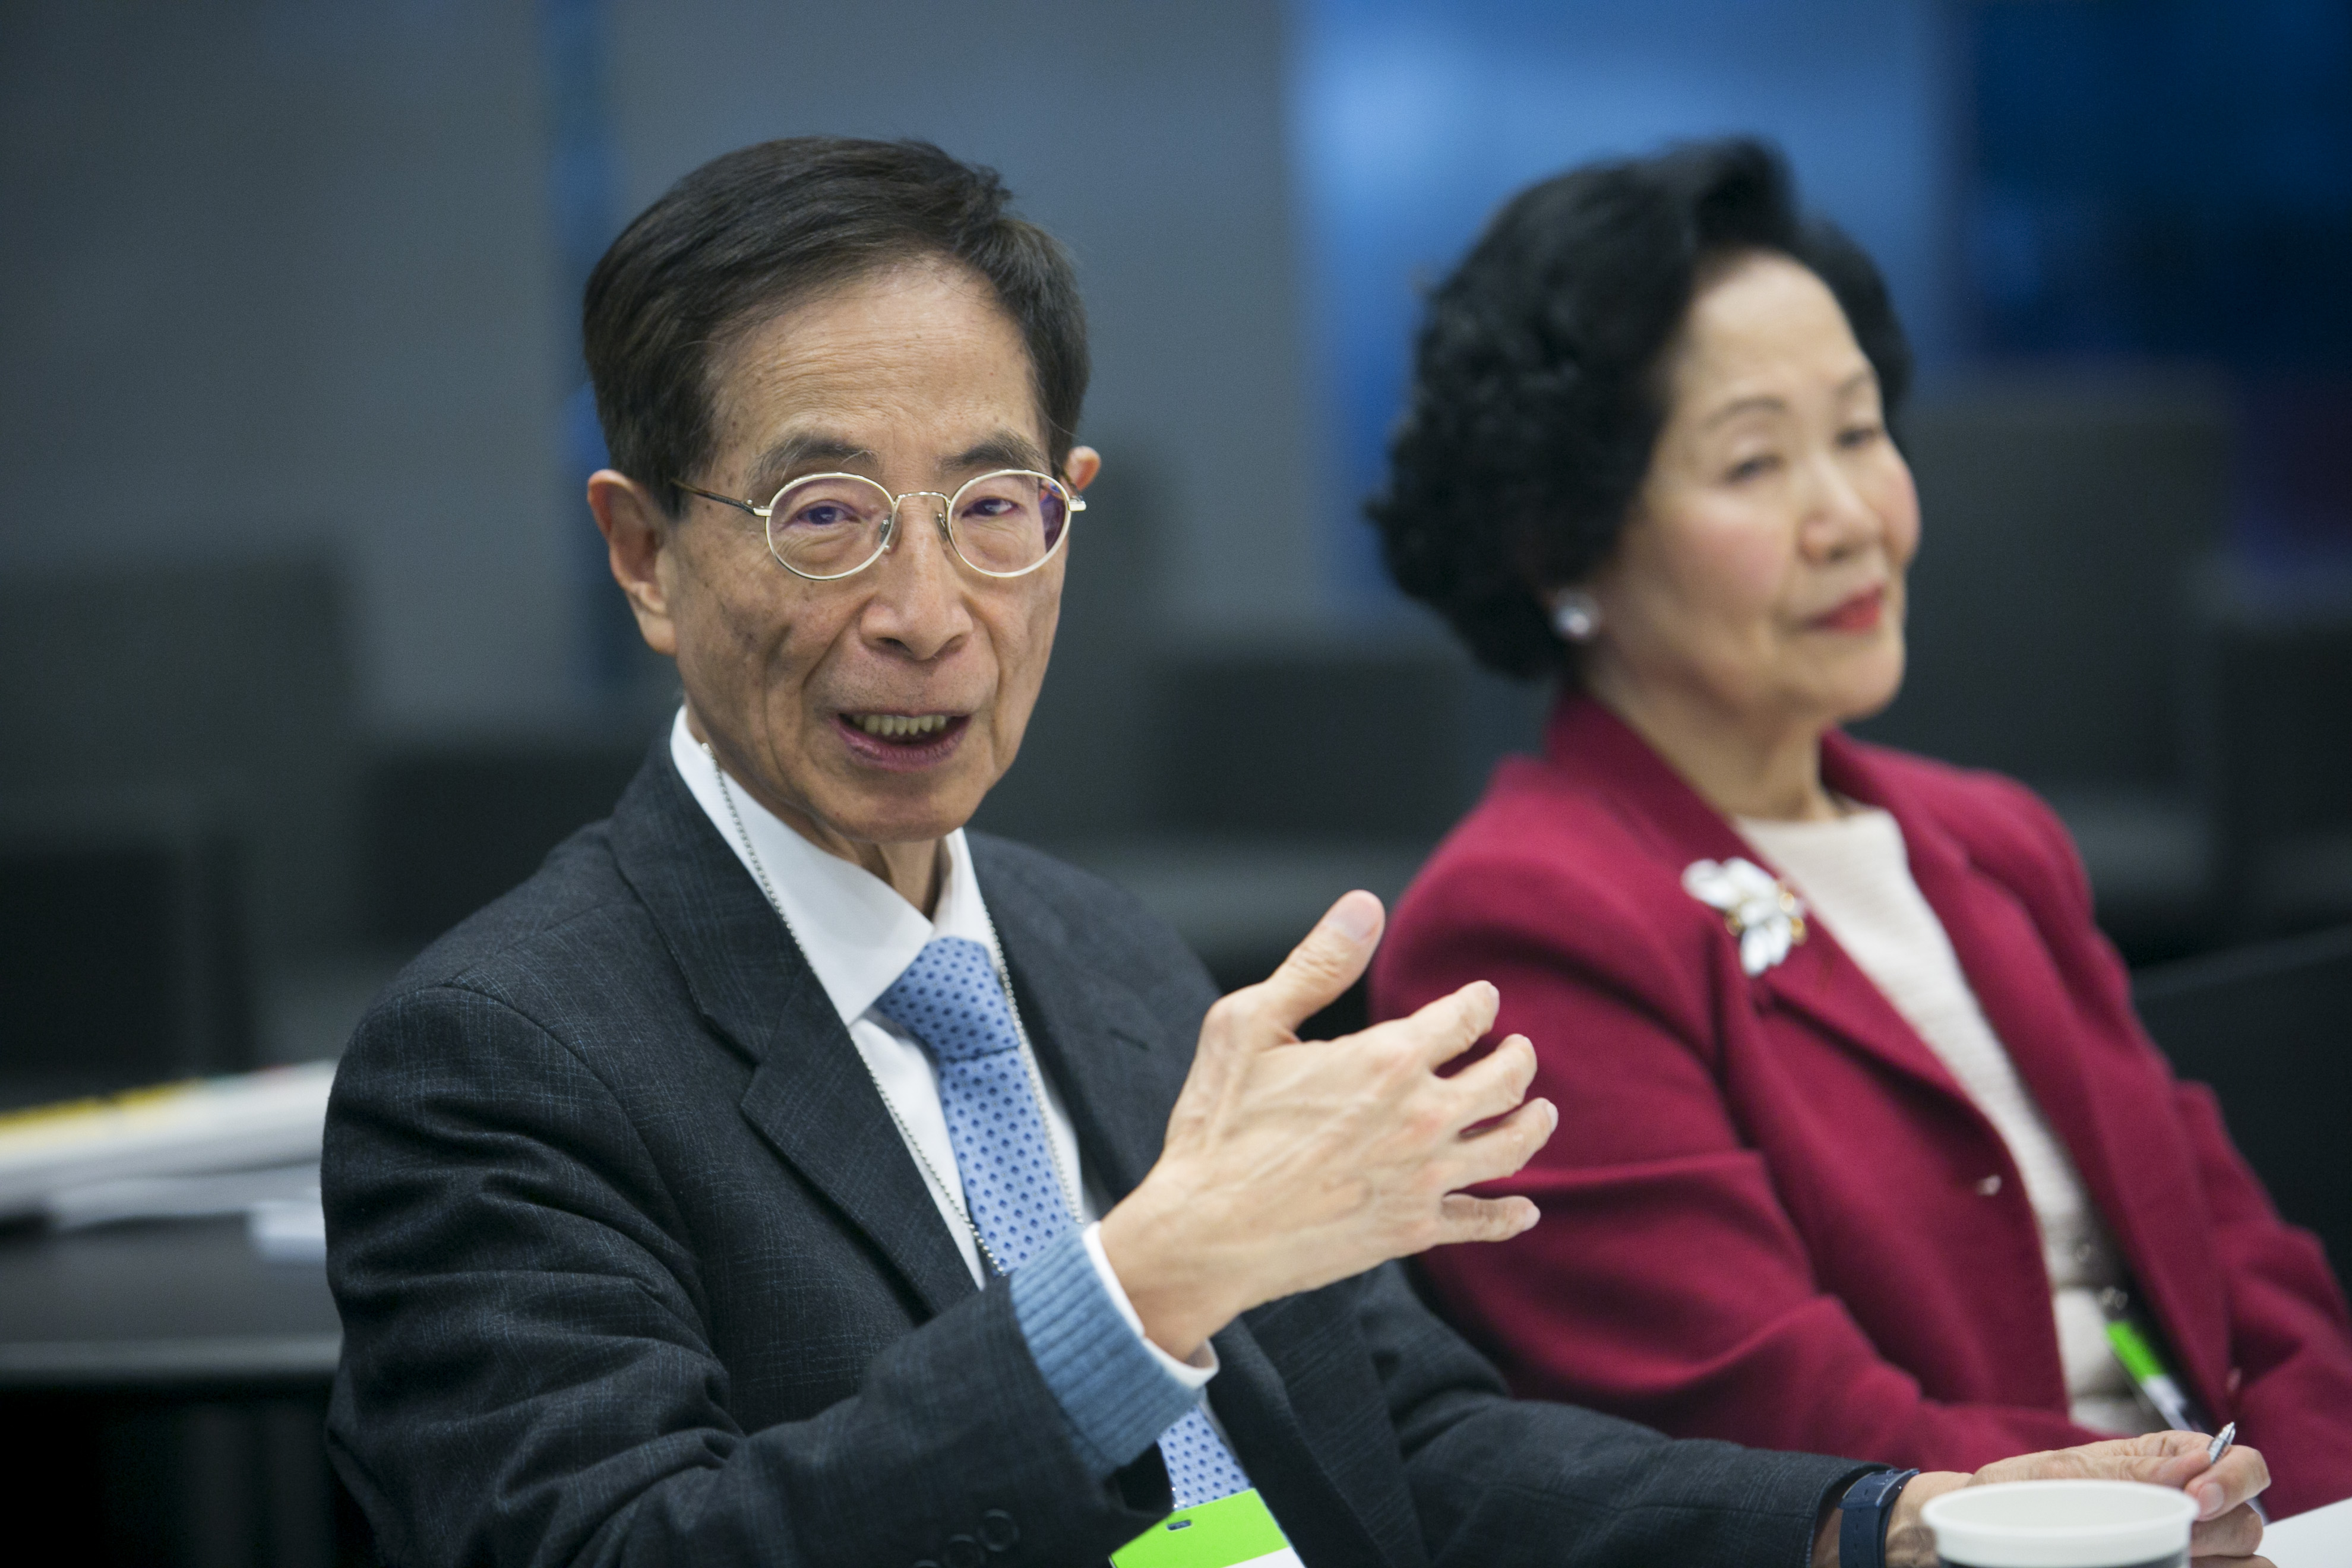 Martin Lee, former member of Hong Kong's Legislative Council, left, speaks as Anson Chan, Hong Kong's former top civil servant, listens during an interview in New York City on March 31, 2014